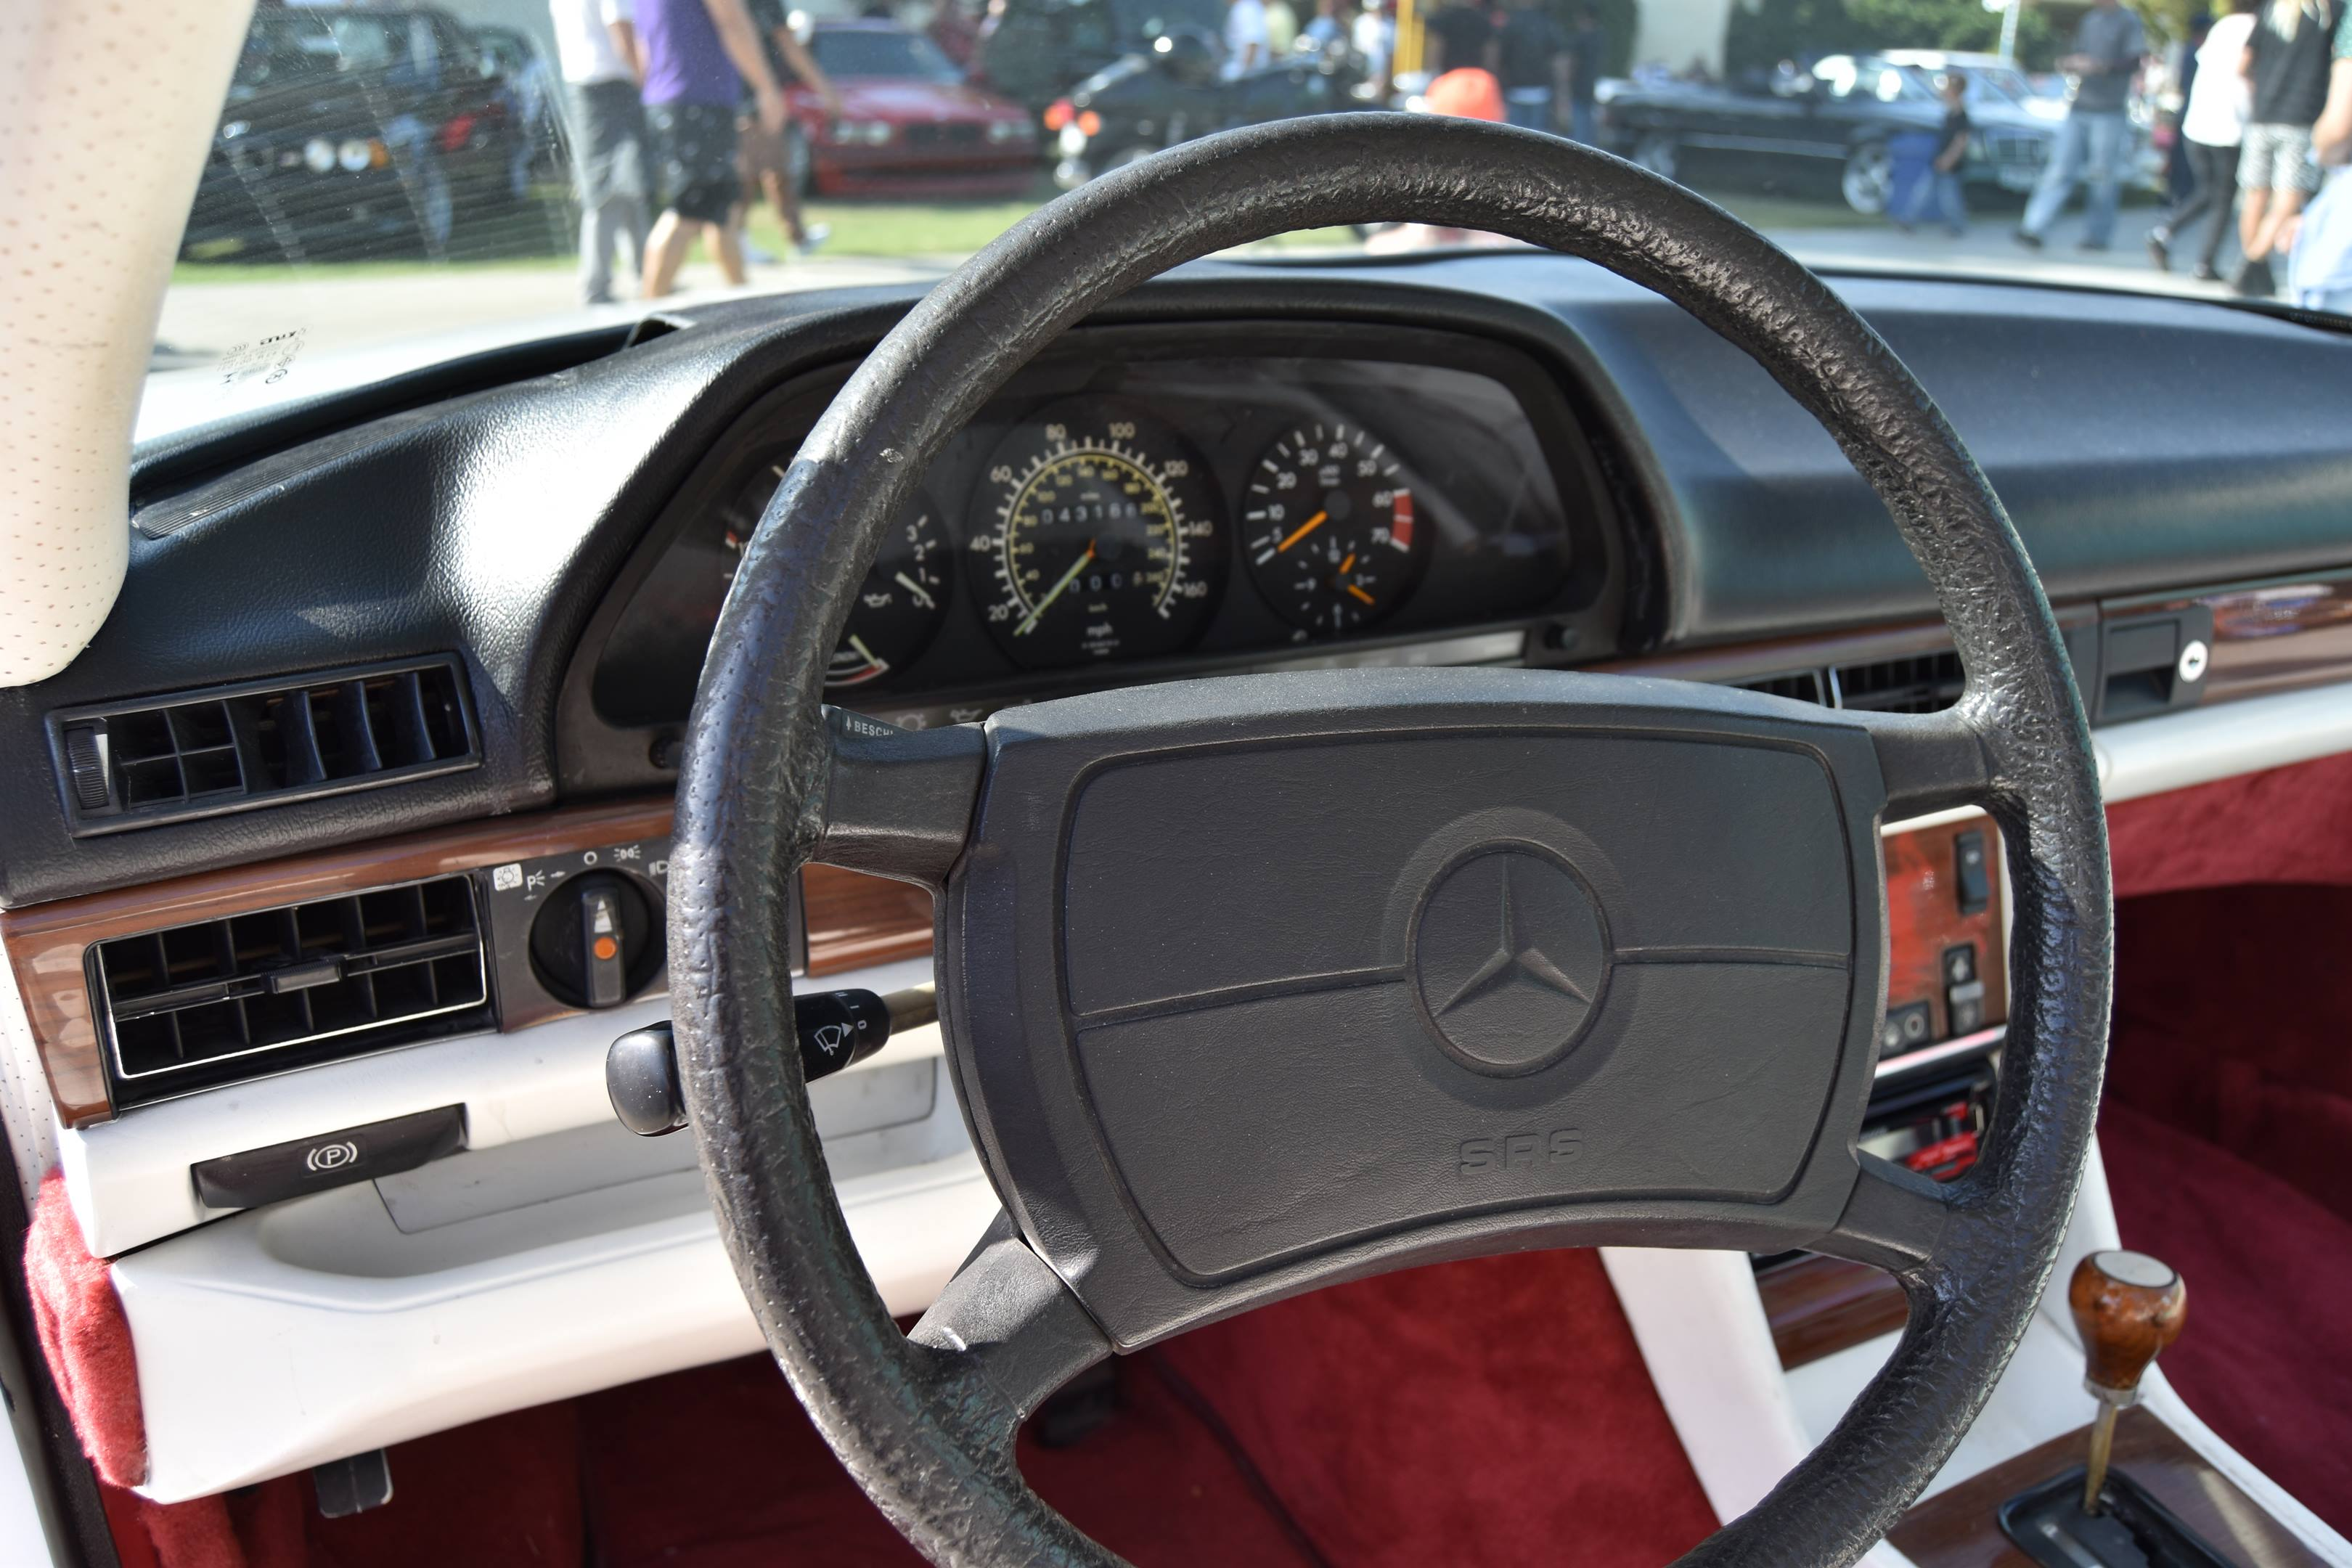 1983 Mercedes-Benz 500SEC Gullwing steering wheel